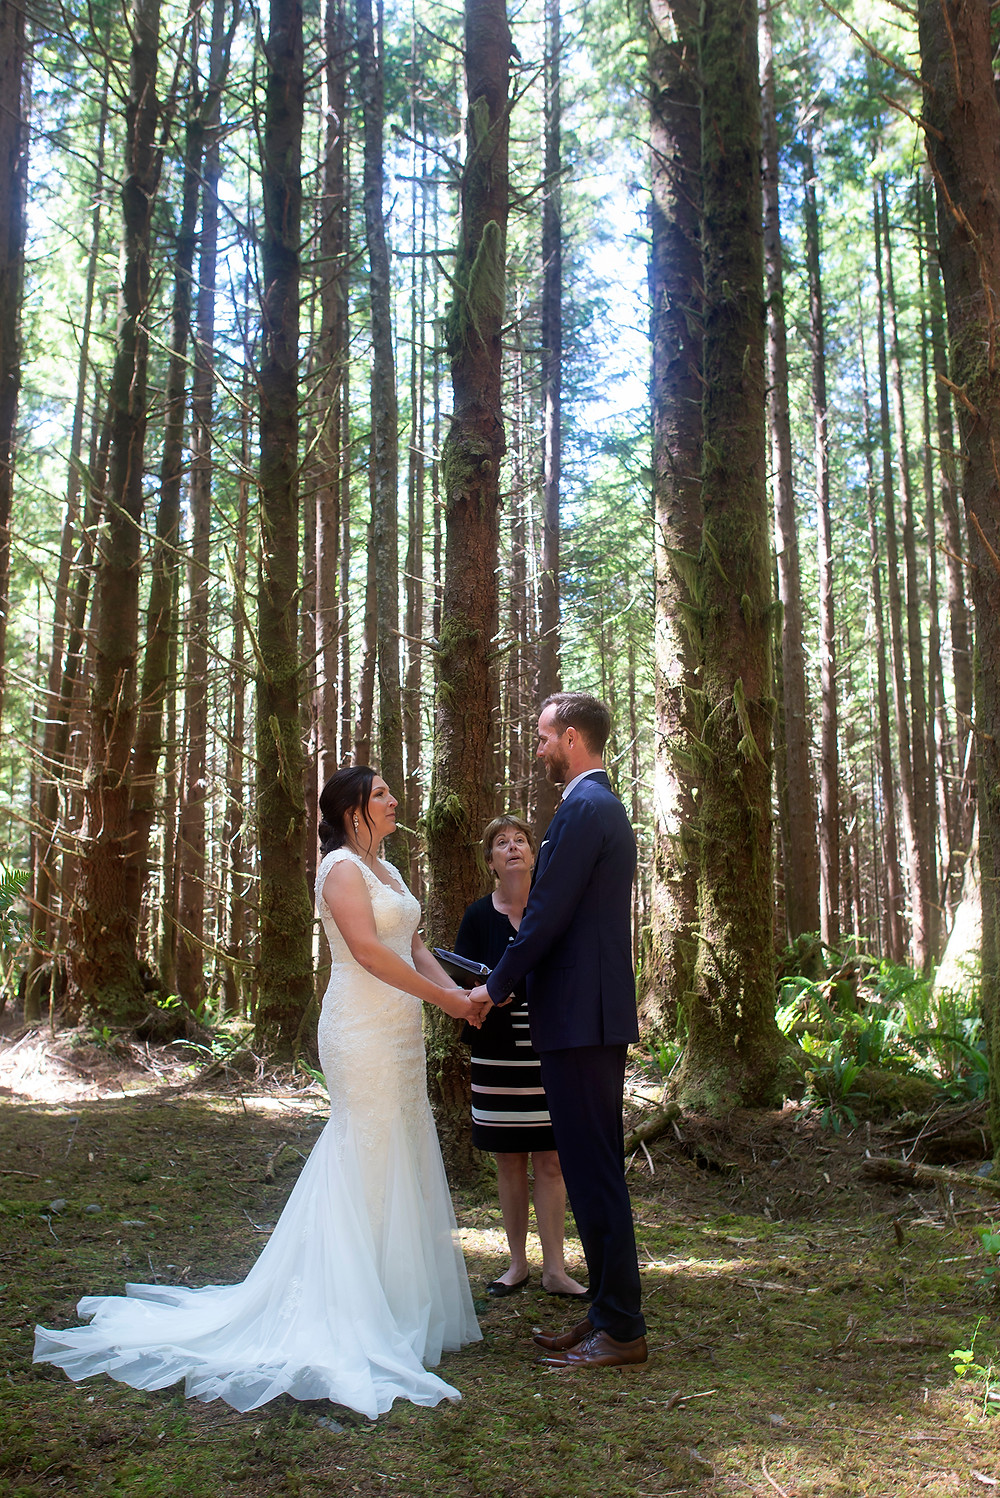 Bride and groom hold hands amongst the trees at a forest wedding in Tofino. Photographed by Kaitlyn Shea.